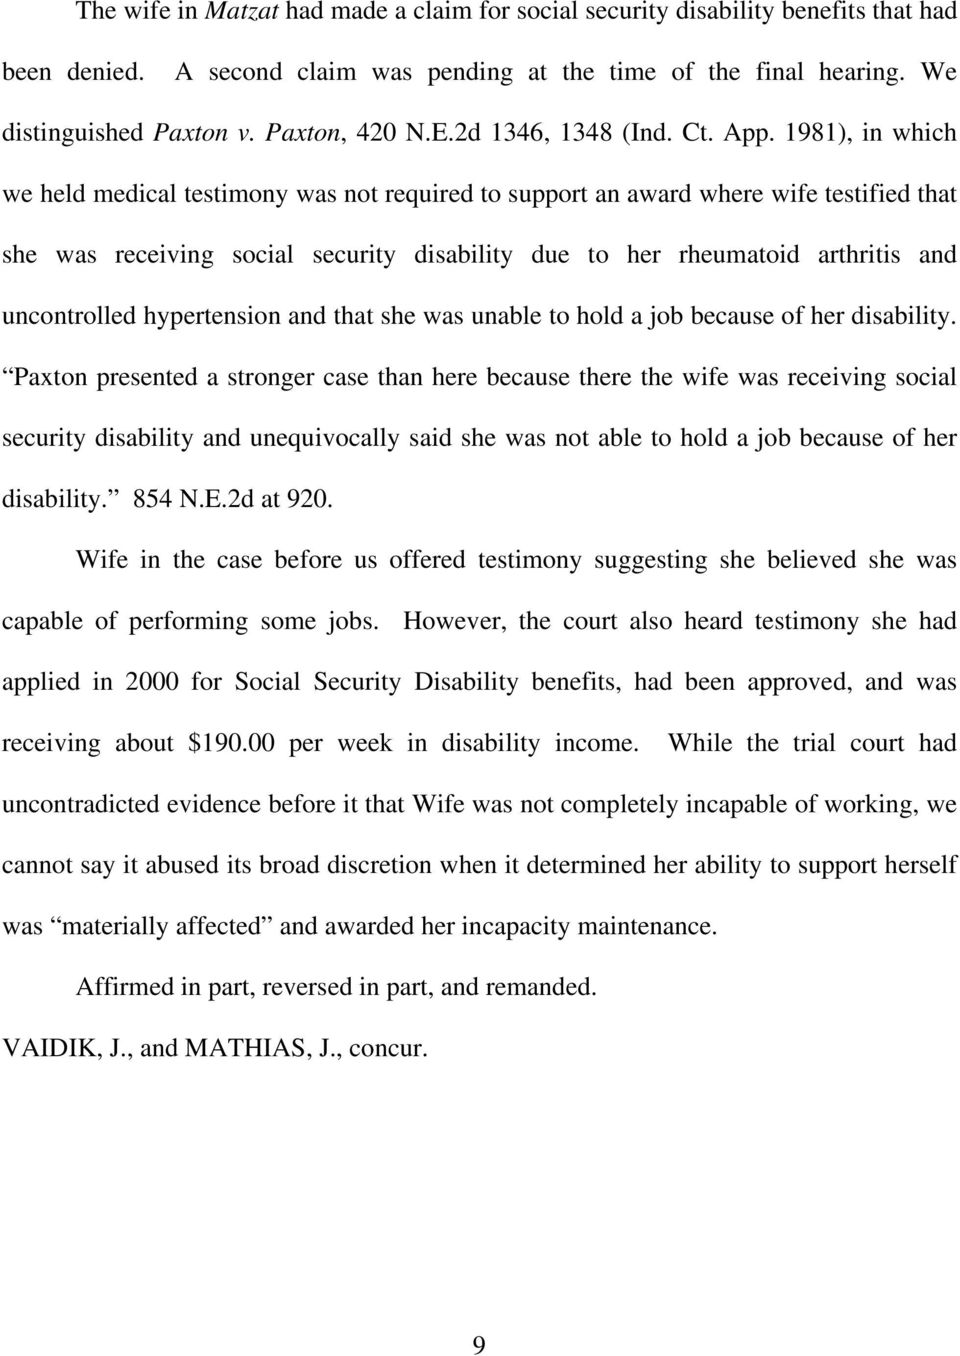 1981), in which we held medical testimony was not required to support an award where wife testified that she was receiving social security disability due to her rheumatoid arthritis and uncontrolled